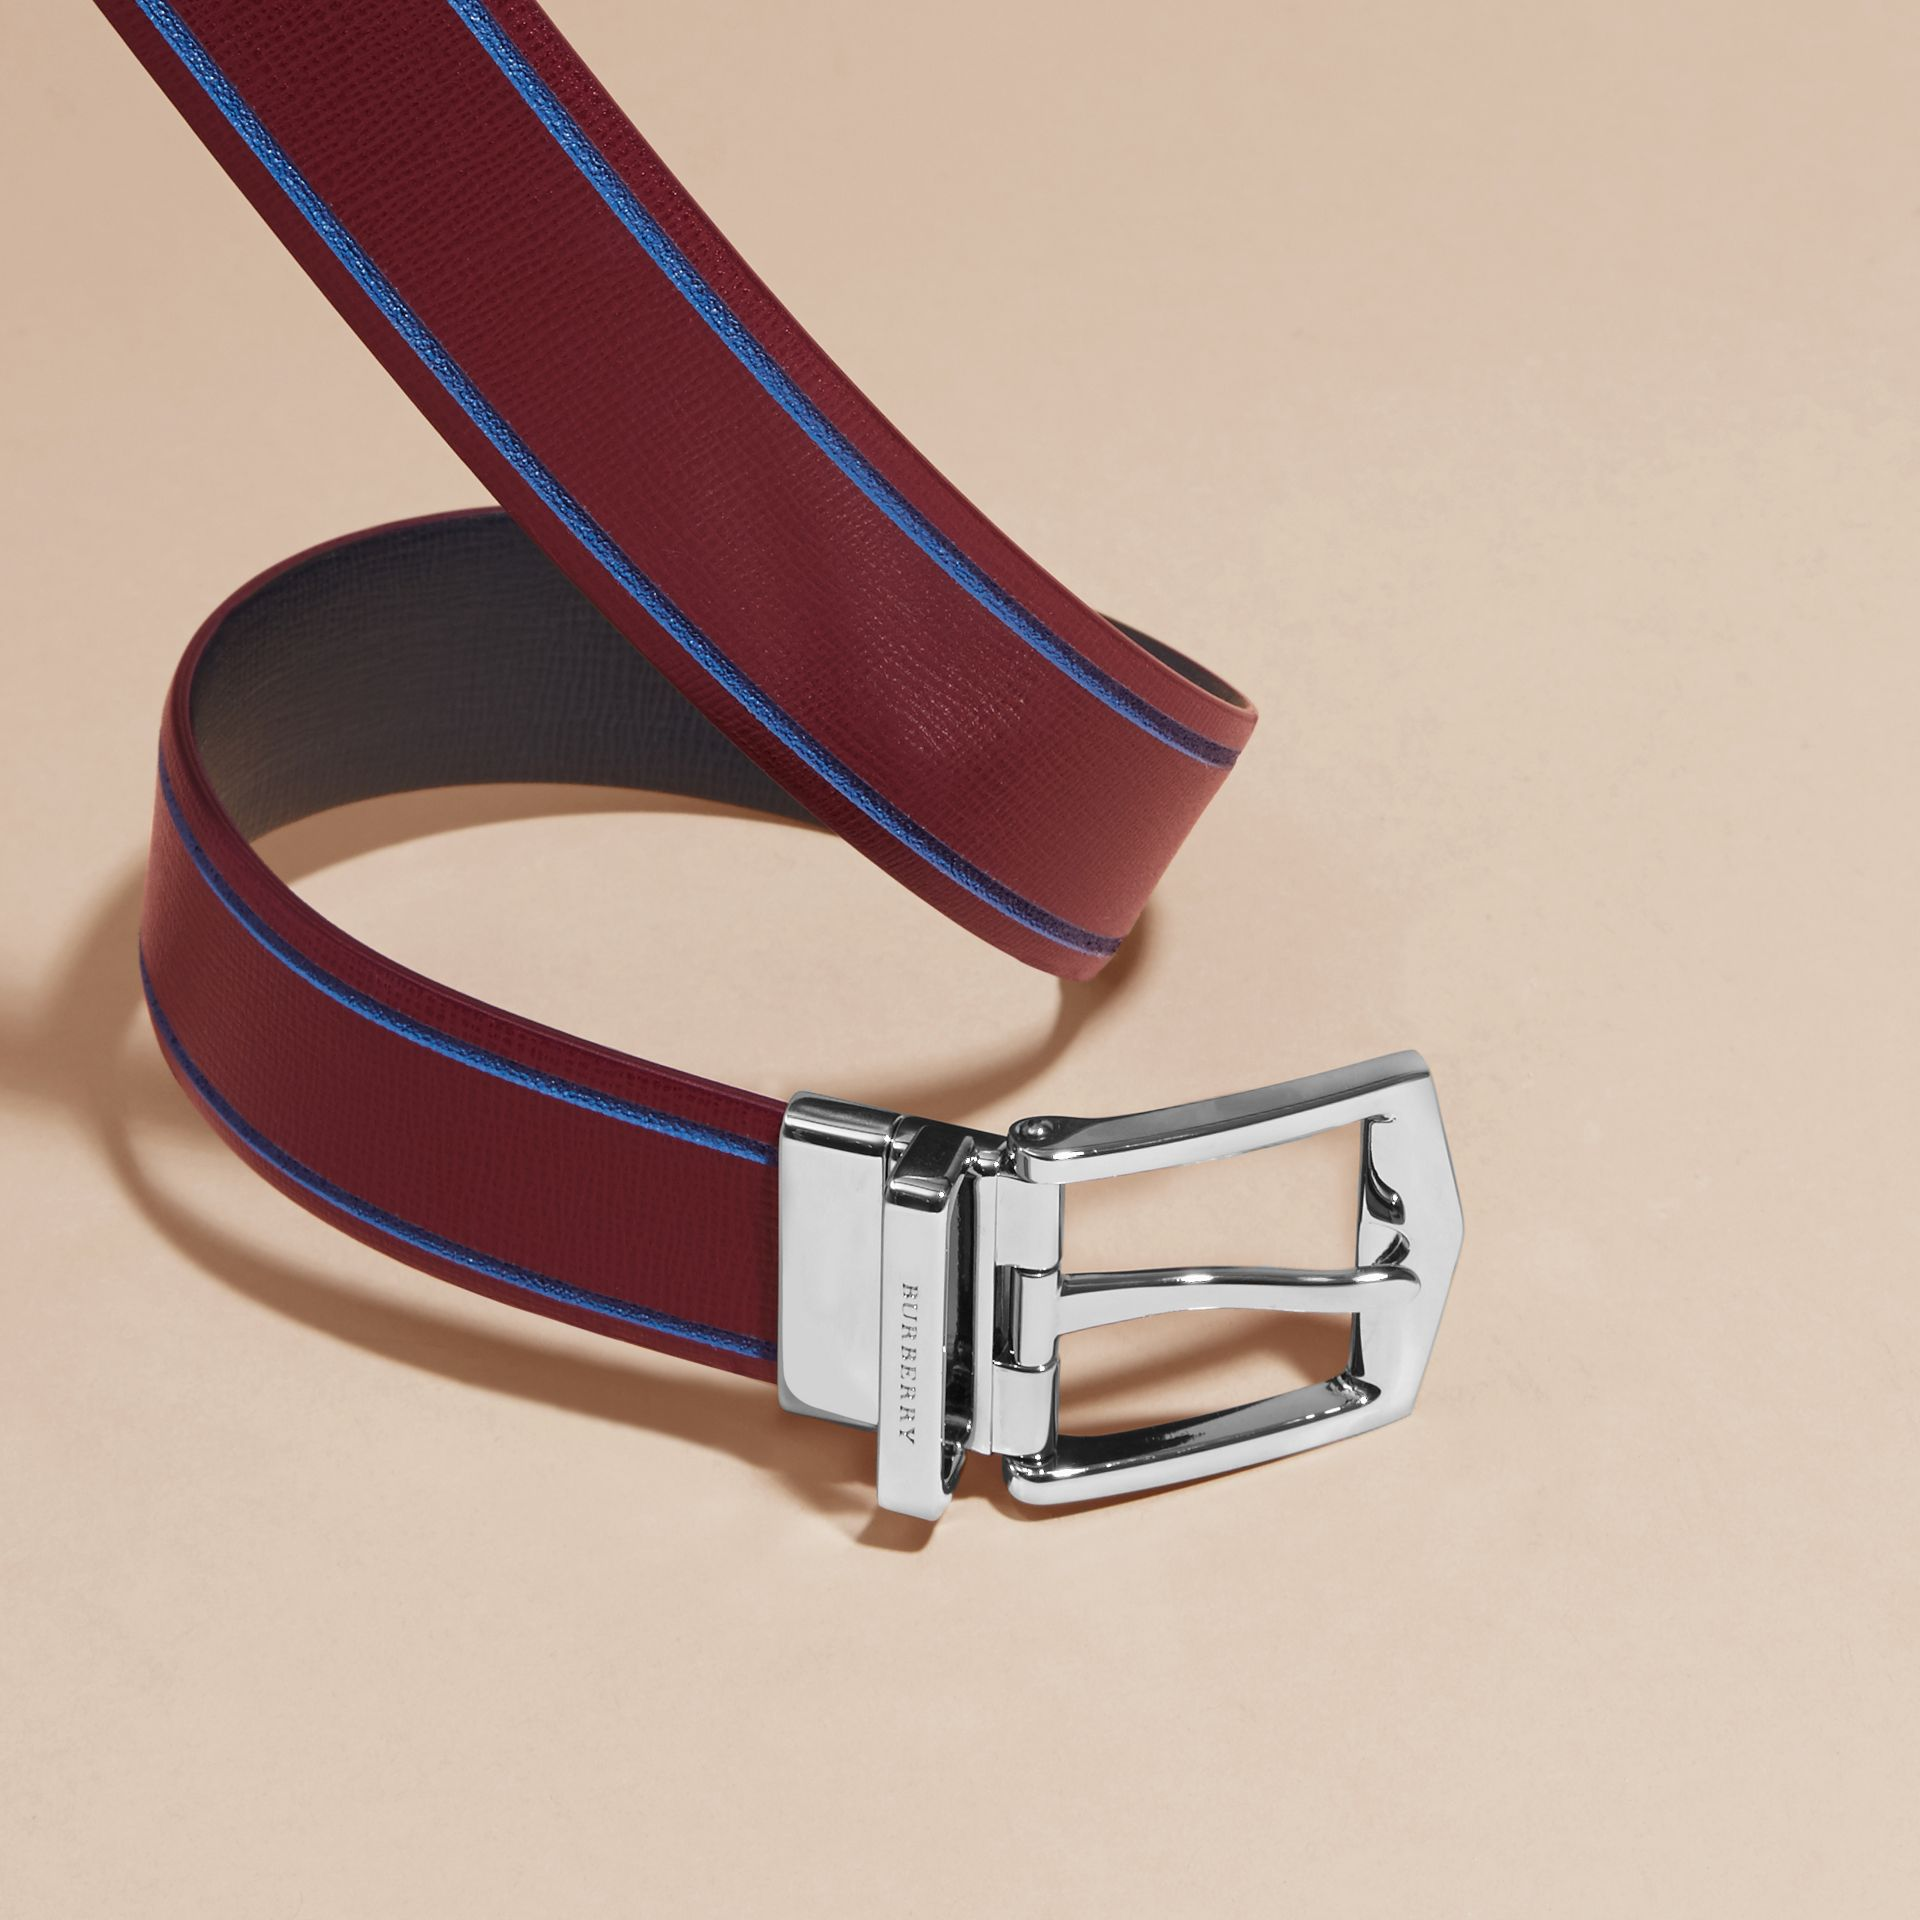 Reversible Border Detail London Leather Belt Burgundy Red/dark Navy - gallery image 3